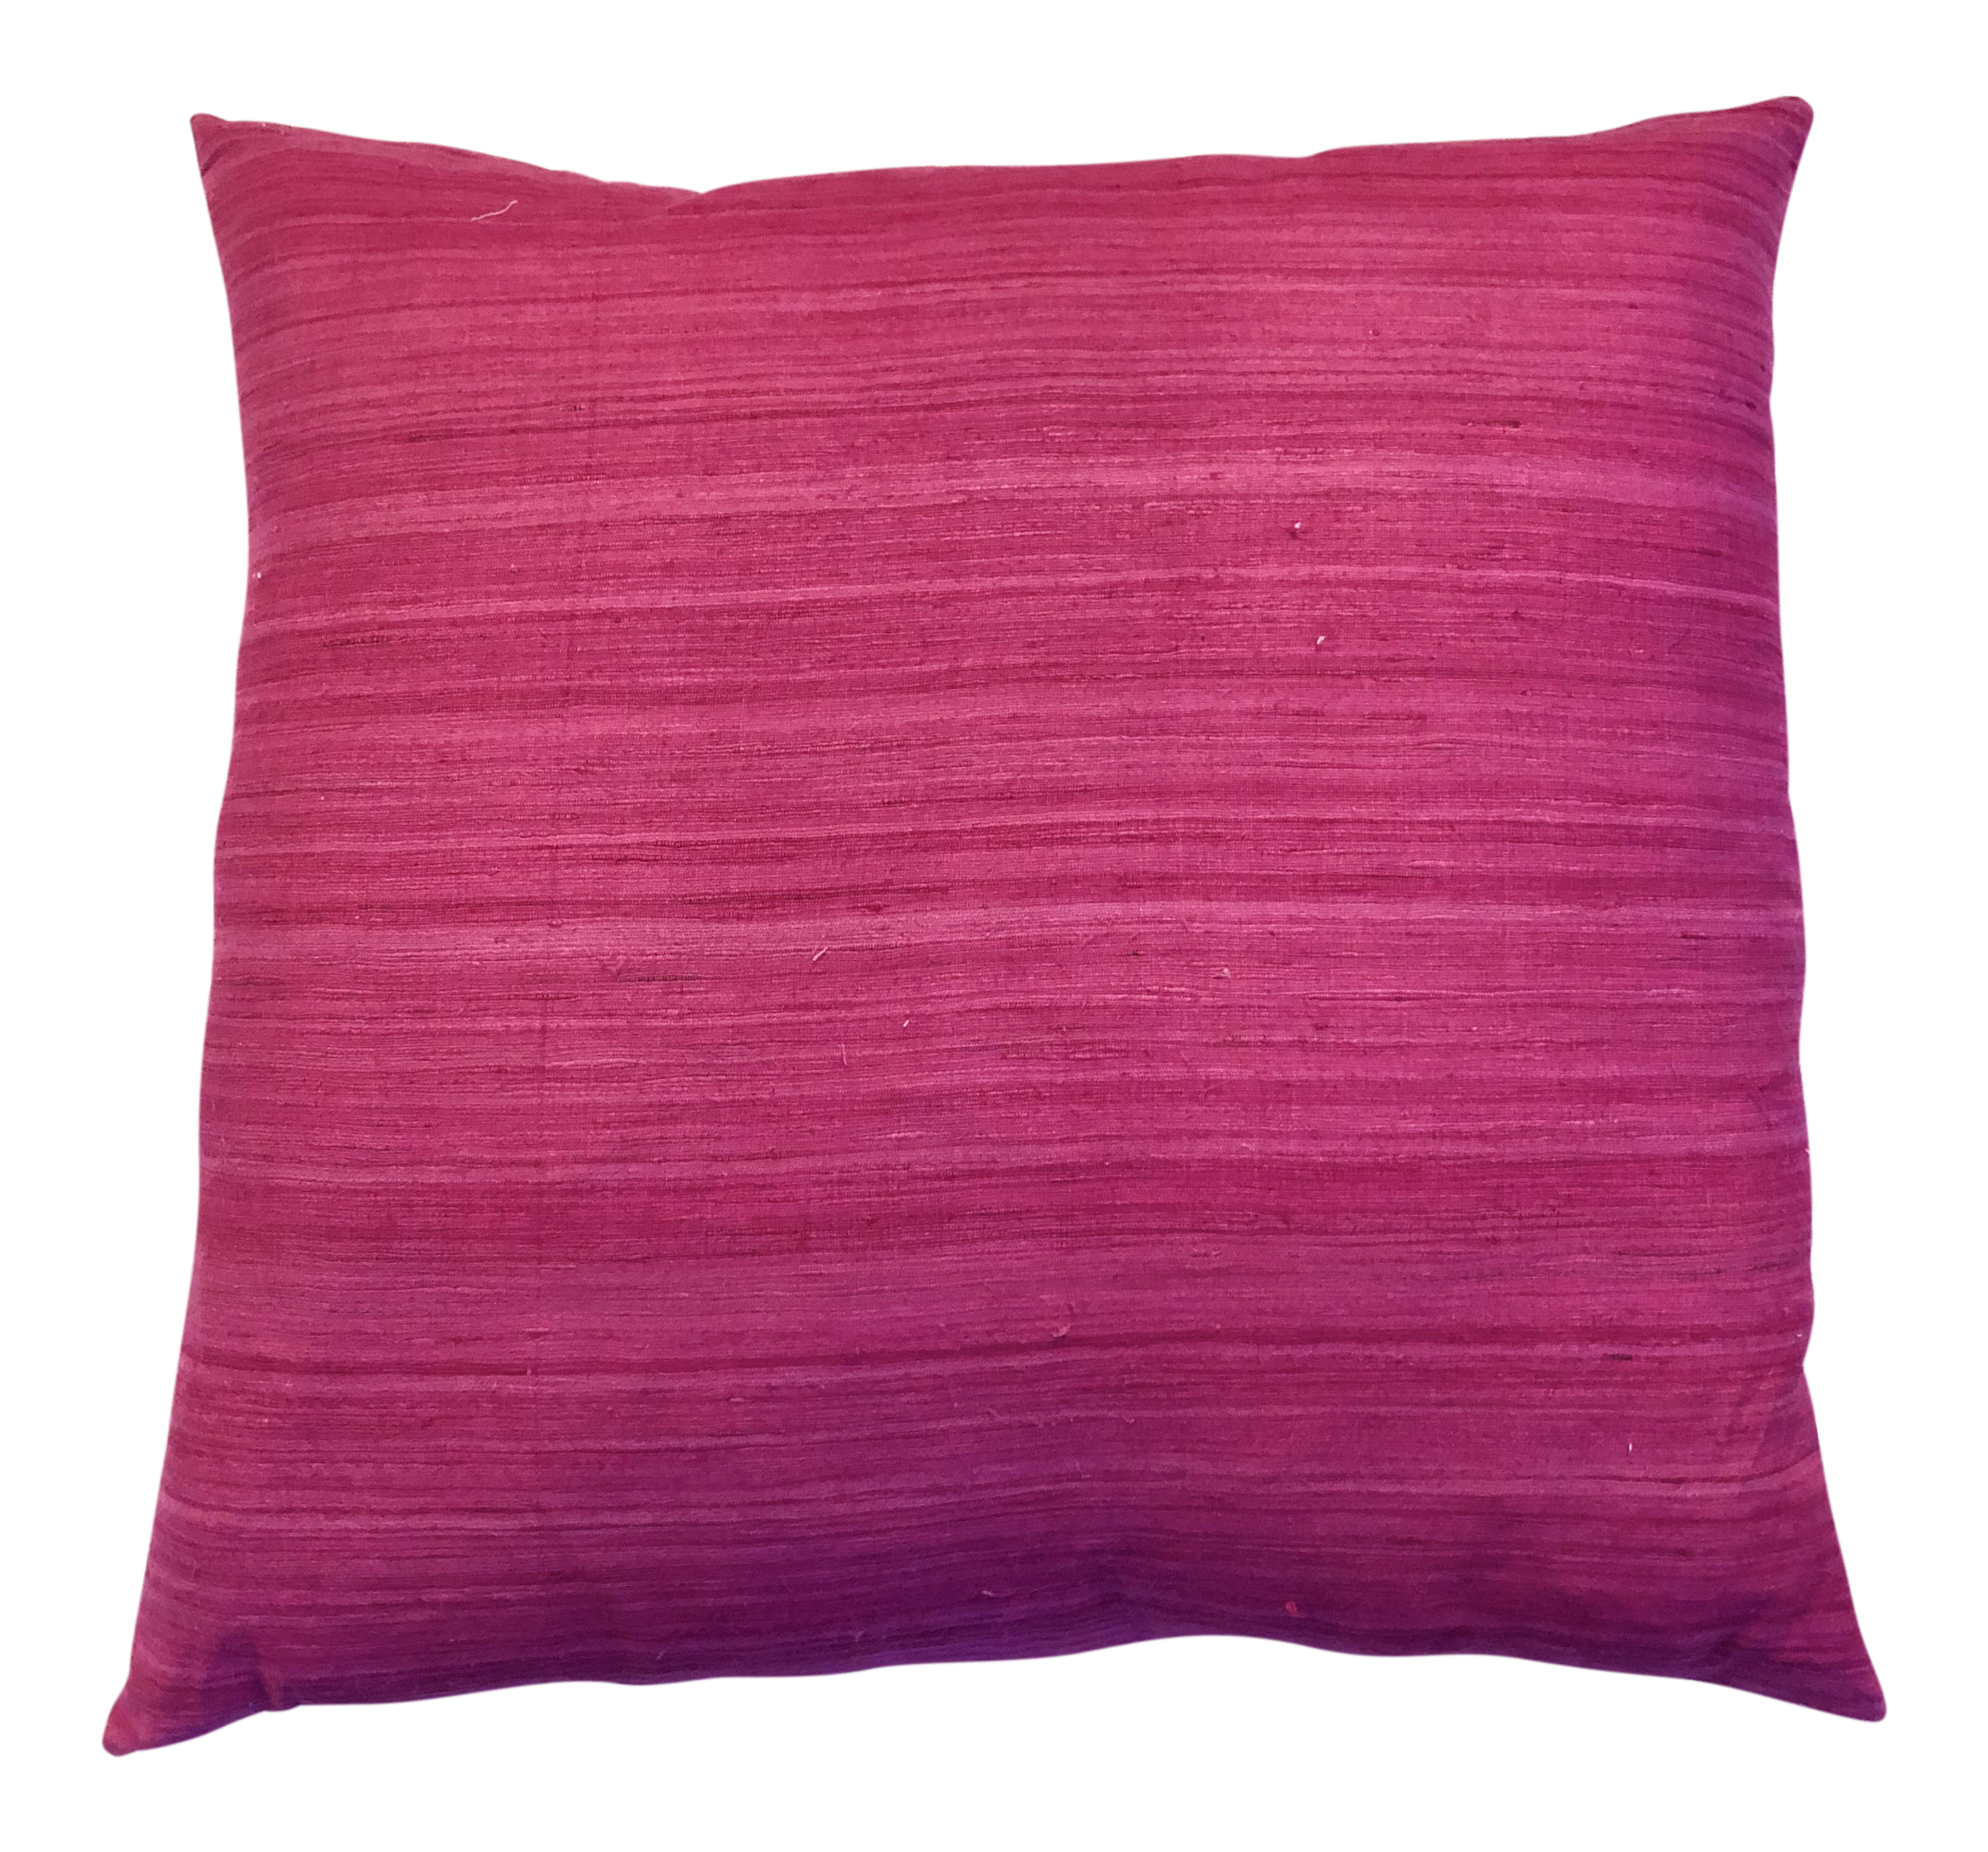 shopping at for decorative cover filler cheap fabric sham deals or square pal insert line guides on find piece pillow